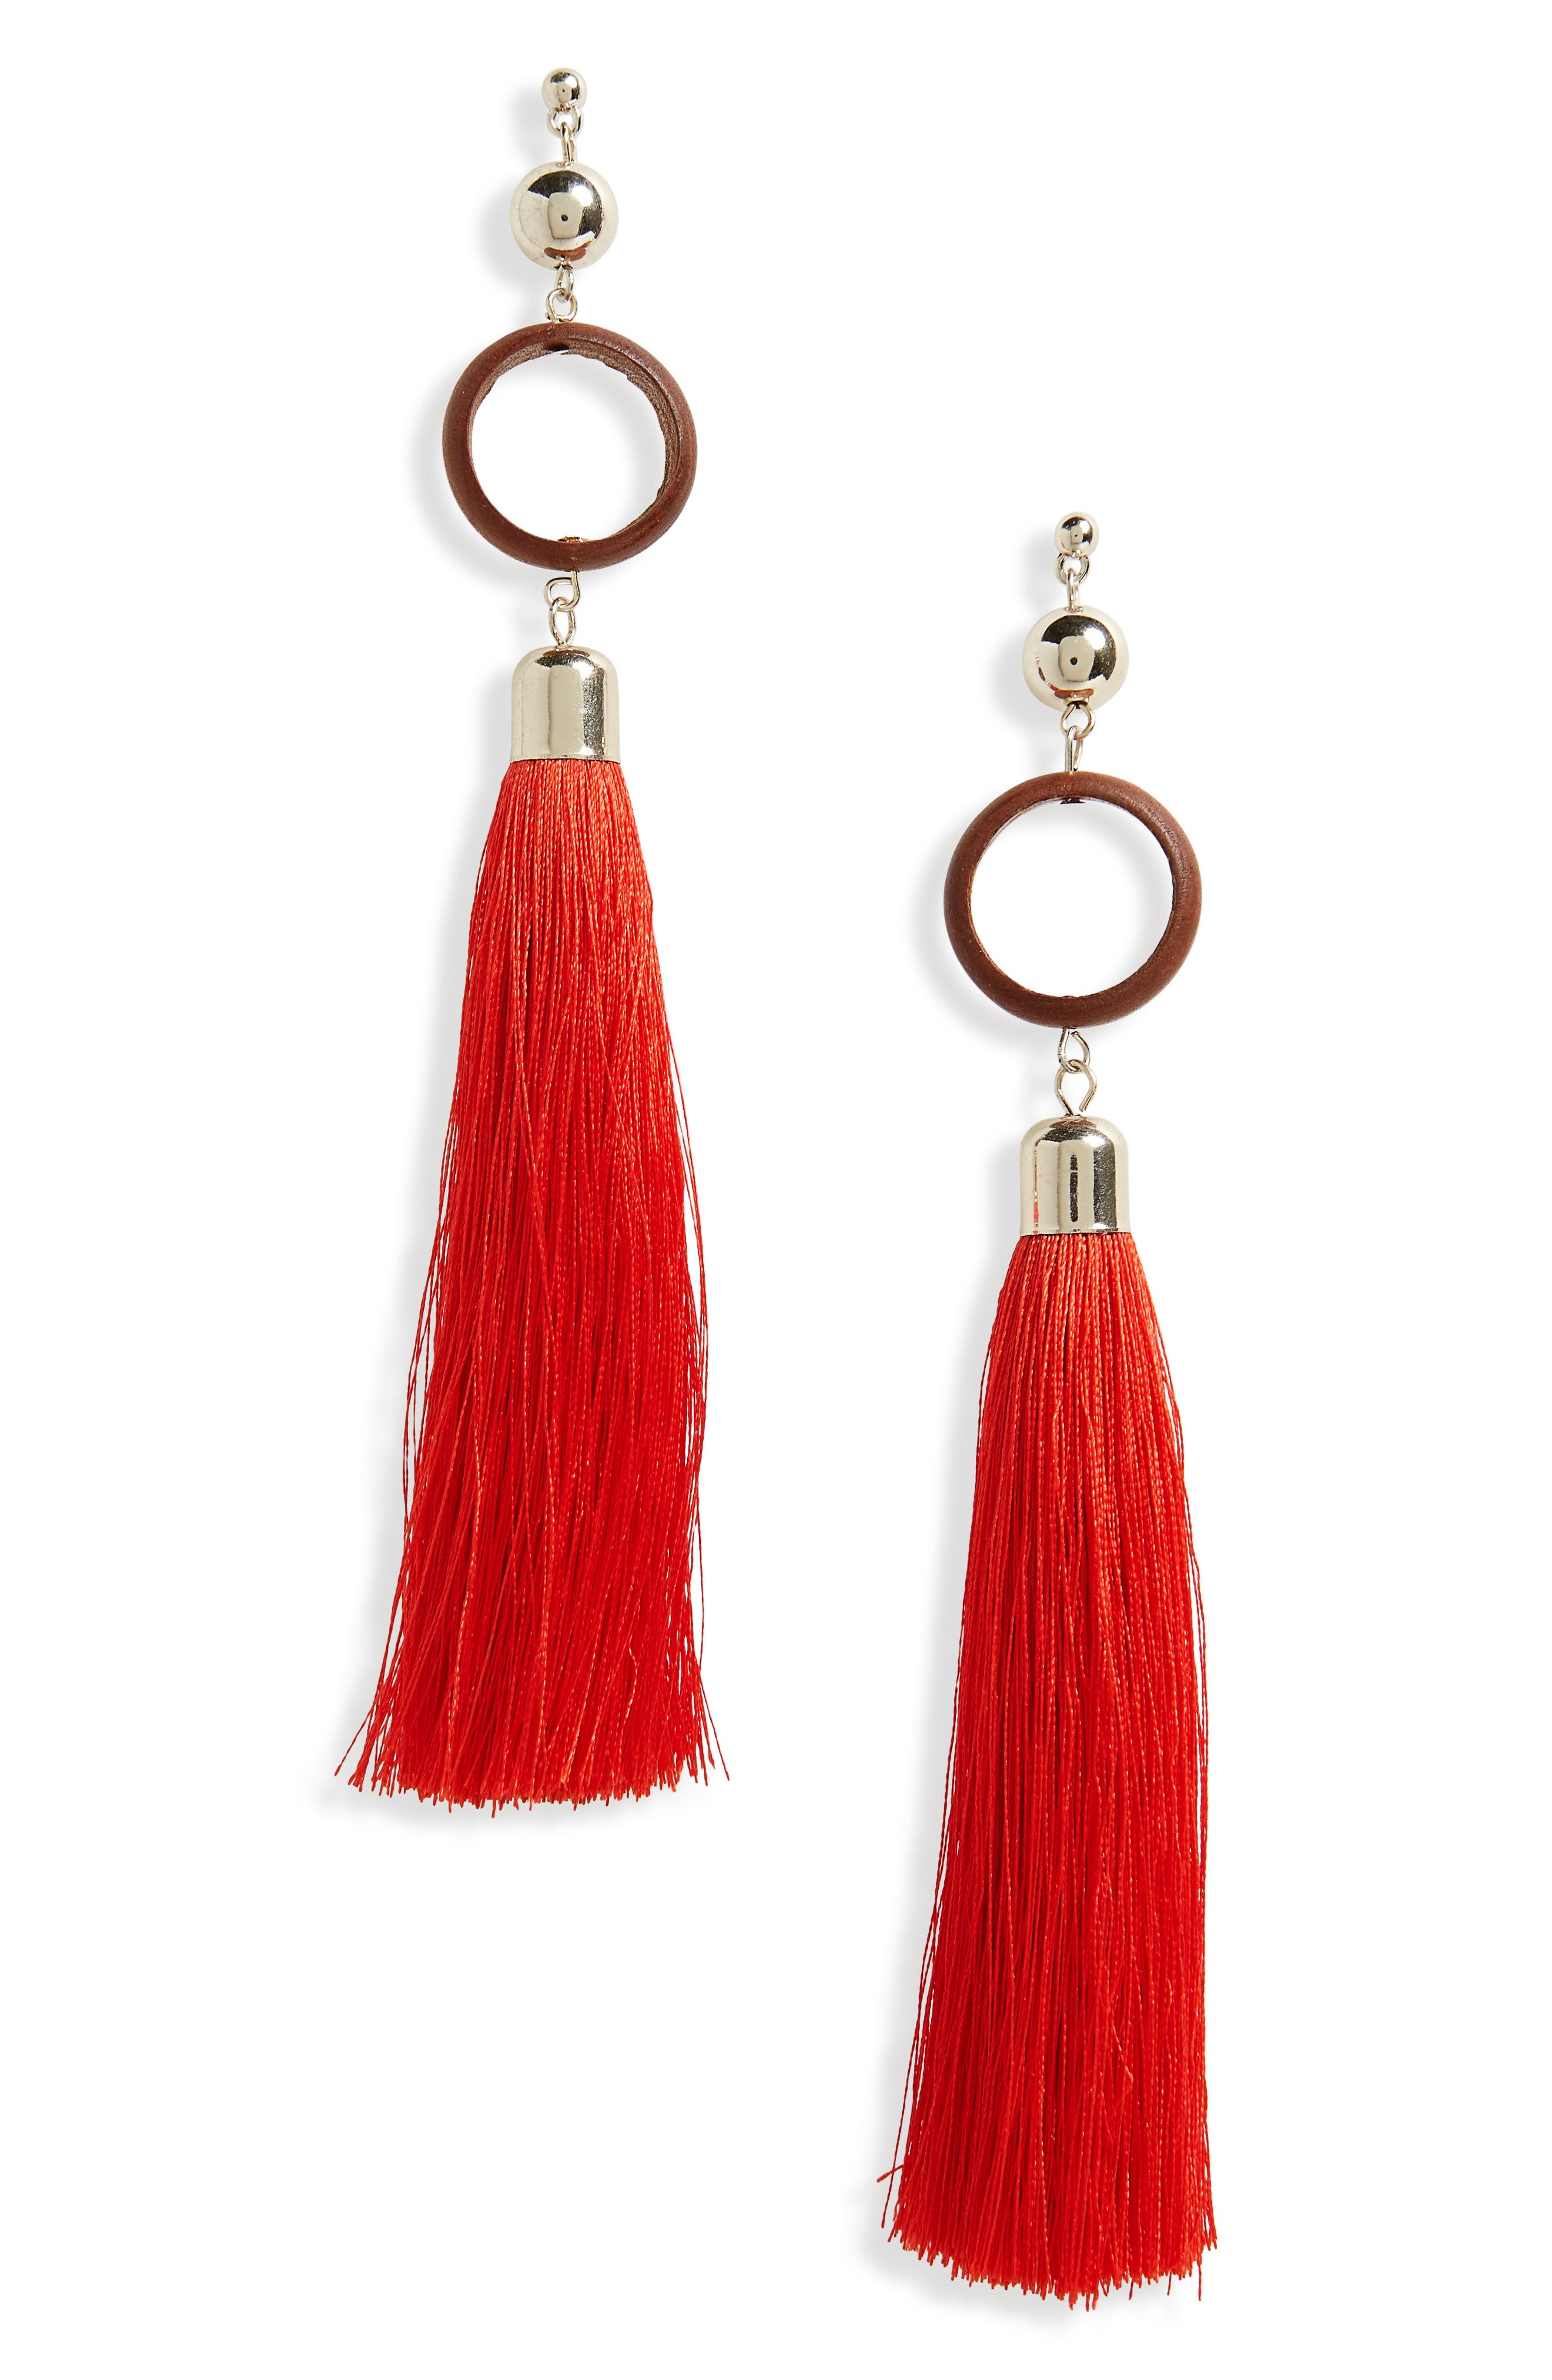 Wood Circle Tassel Earrings,                             Main thumbnail 1, color,                             600